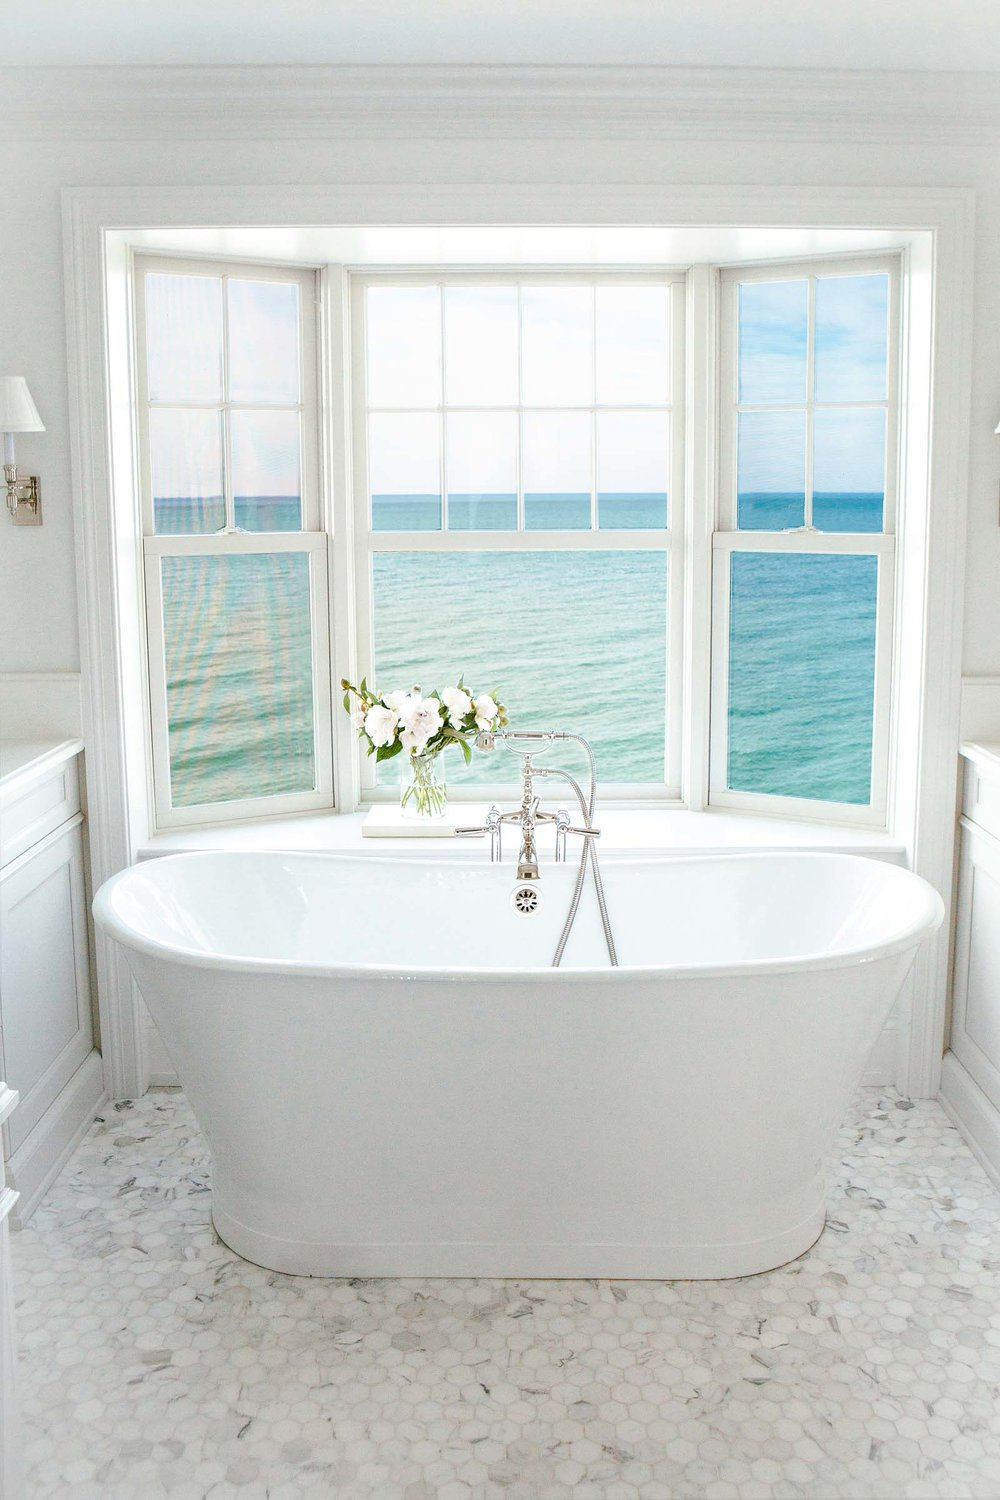 Leo_Designs_Chicago_interior_design_grand_haven_beach_refuge25.jpg